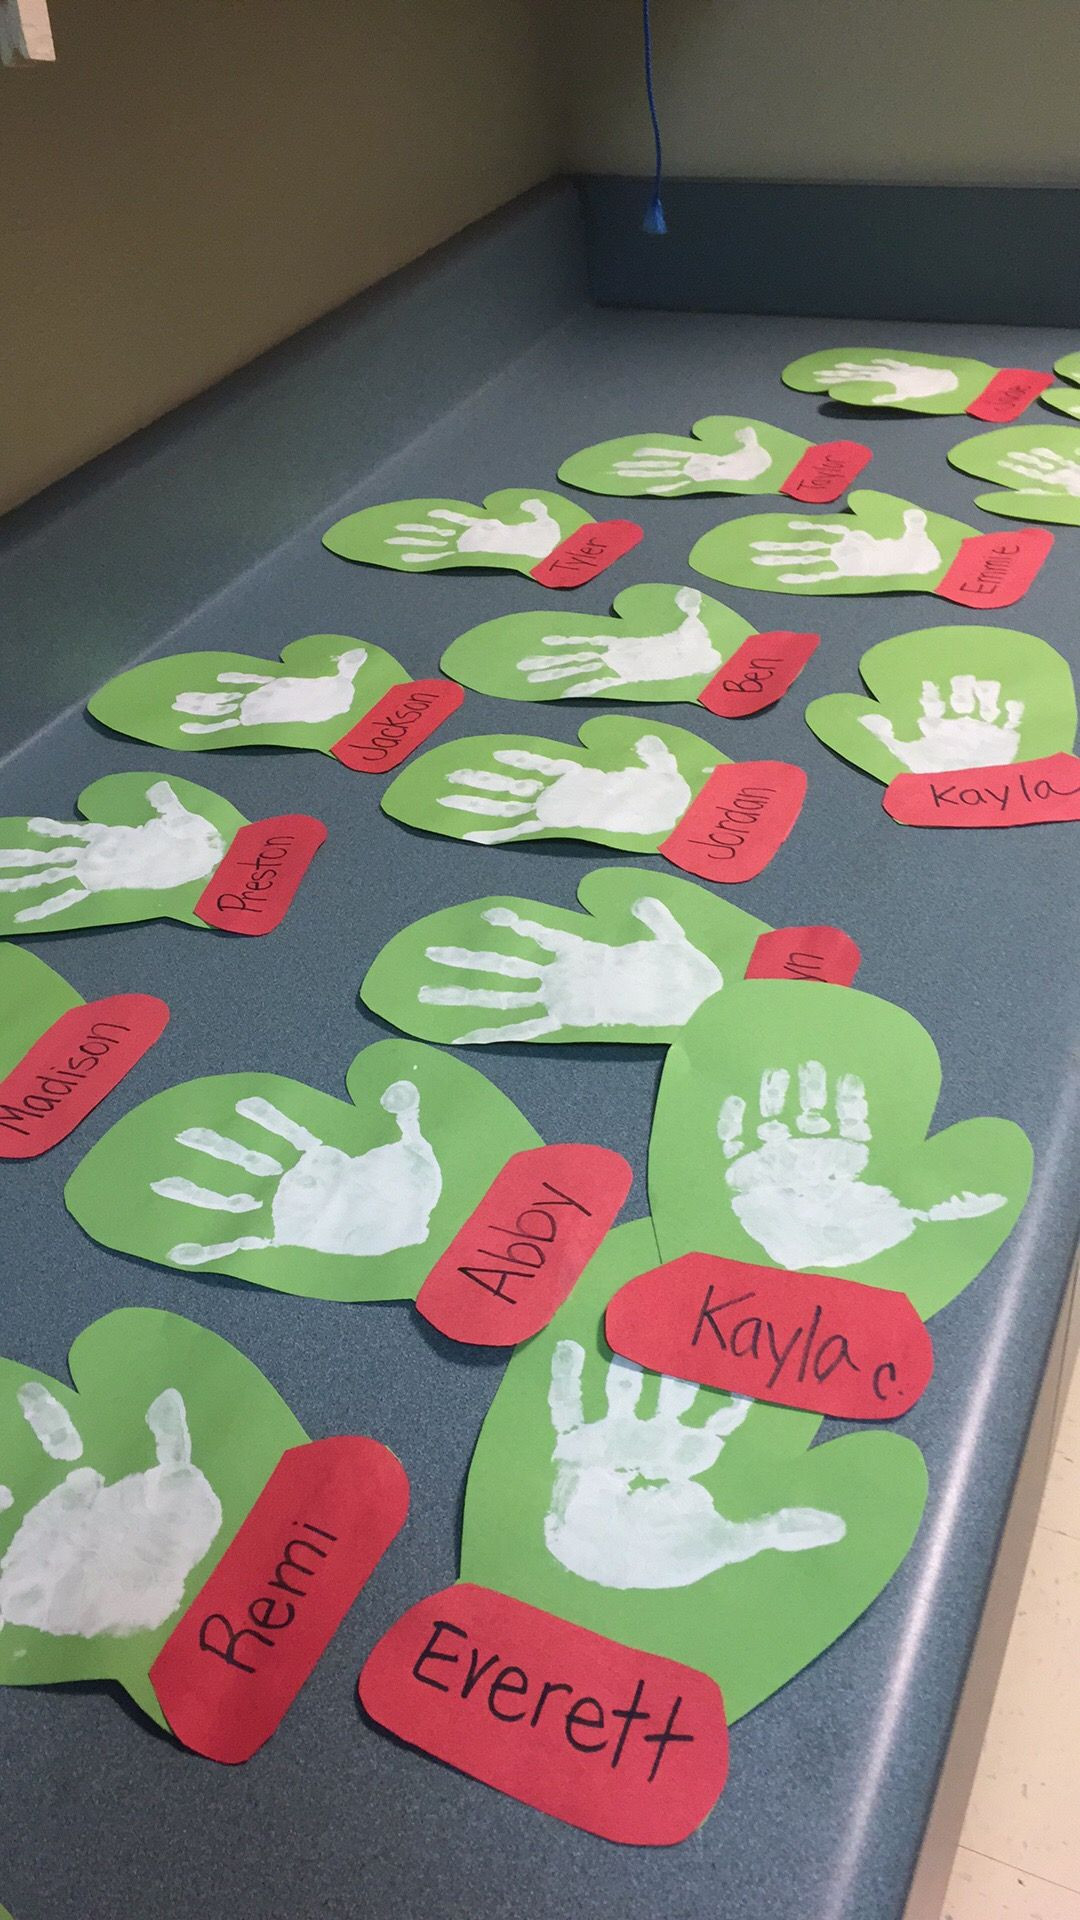 Best ideas about Christmas Projects For Preschoolers . Save or Pin 23 Cute and Fun Handprint and Footprint Crafts for Kids Now.